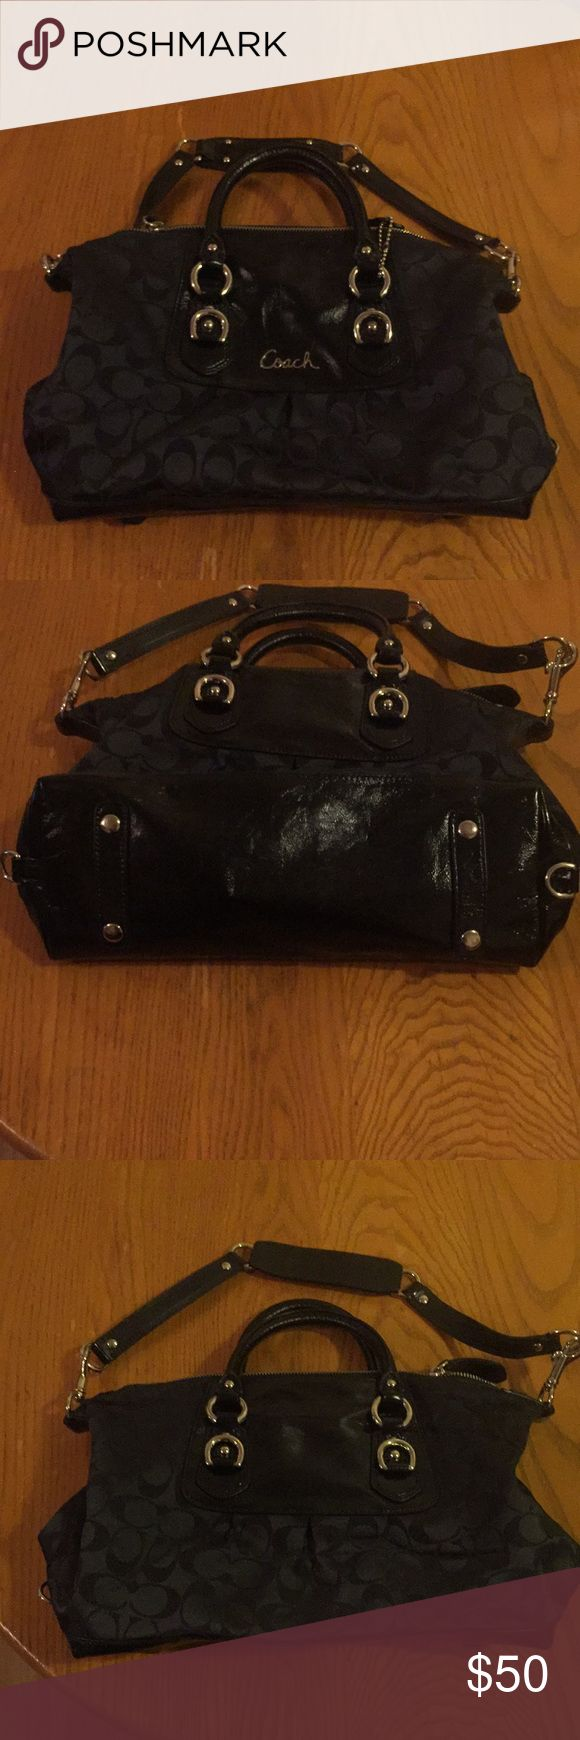 Coach satchel Adorable black Coach satchel. Perfect for a night out. In wonderful condition. No marks or scratches. Bags Satchels